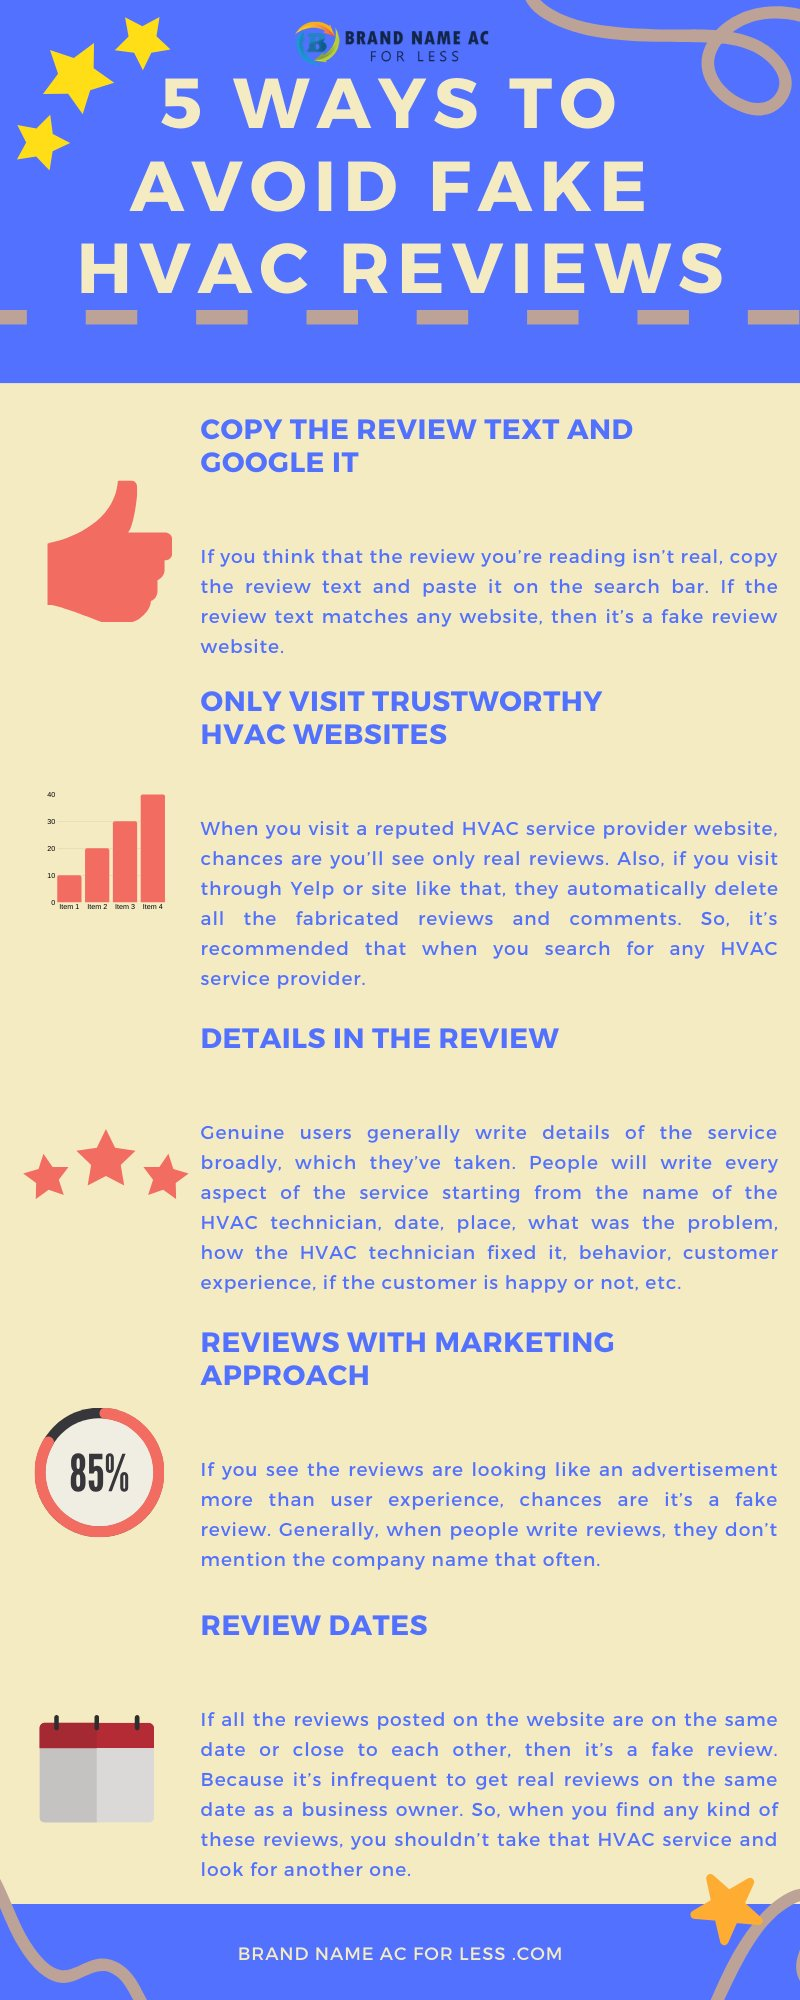 5 Ways to Avoid Fake HVAC Reviews